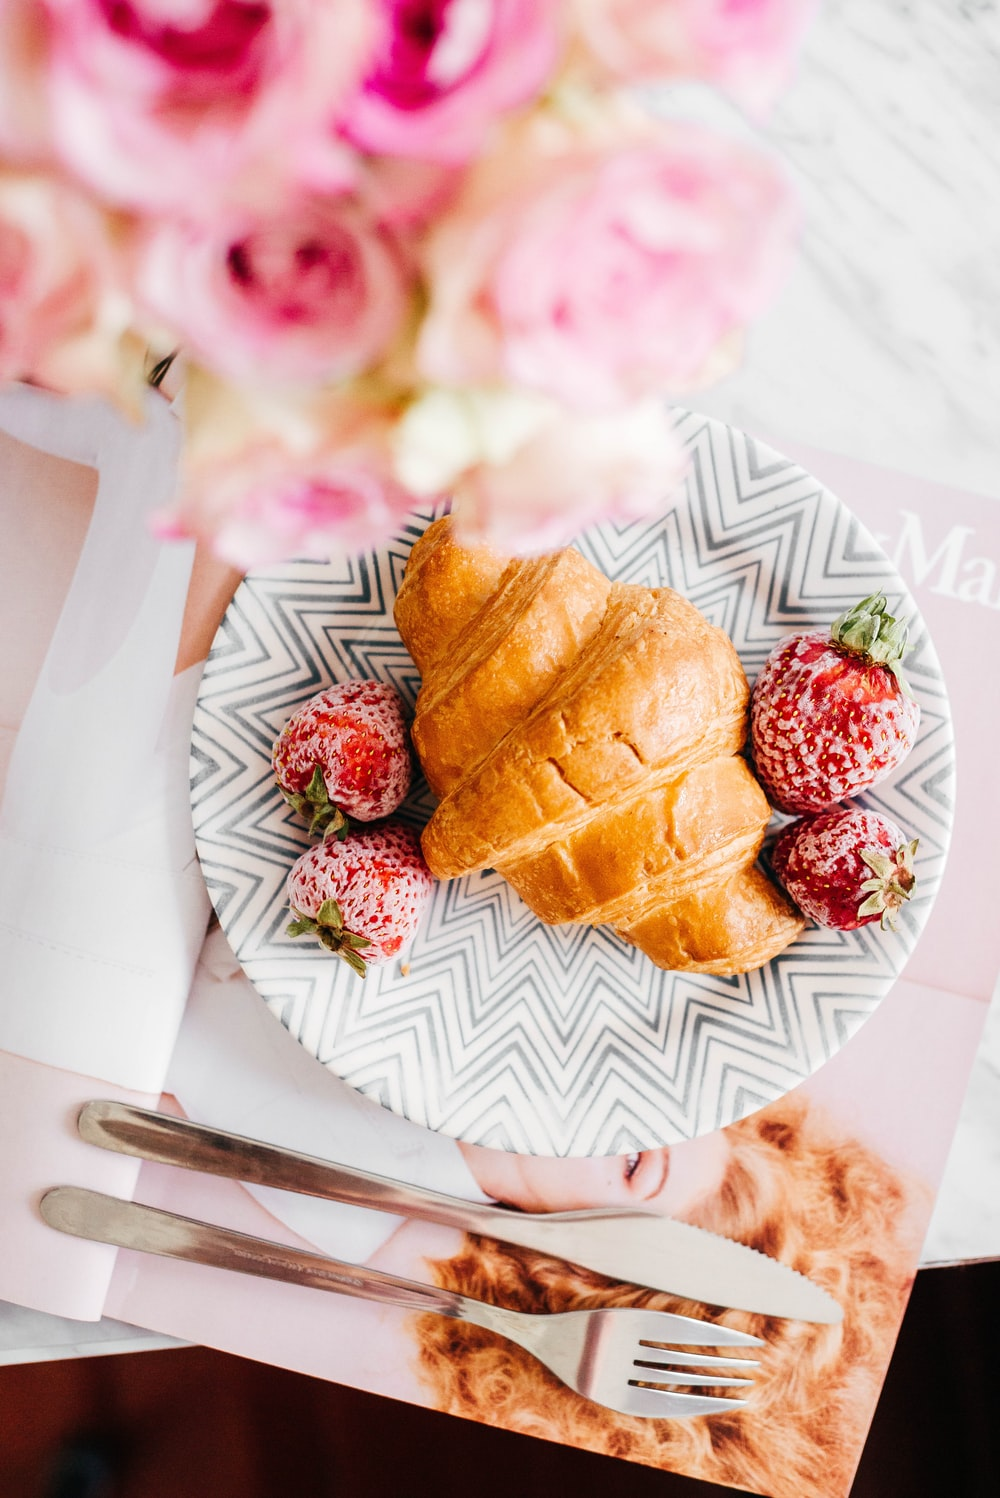 croissant bread and stawberries on beside fork and knife